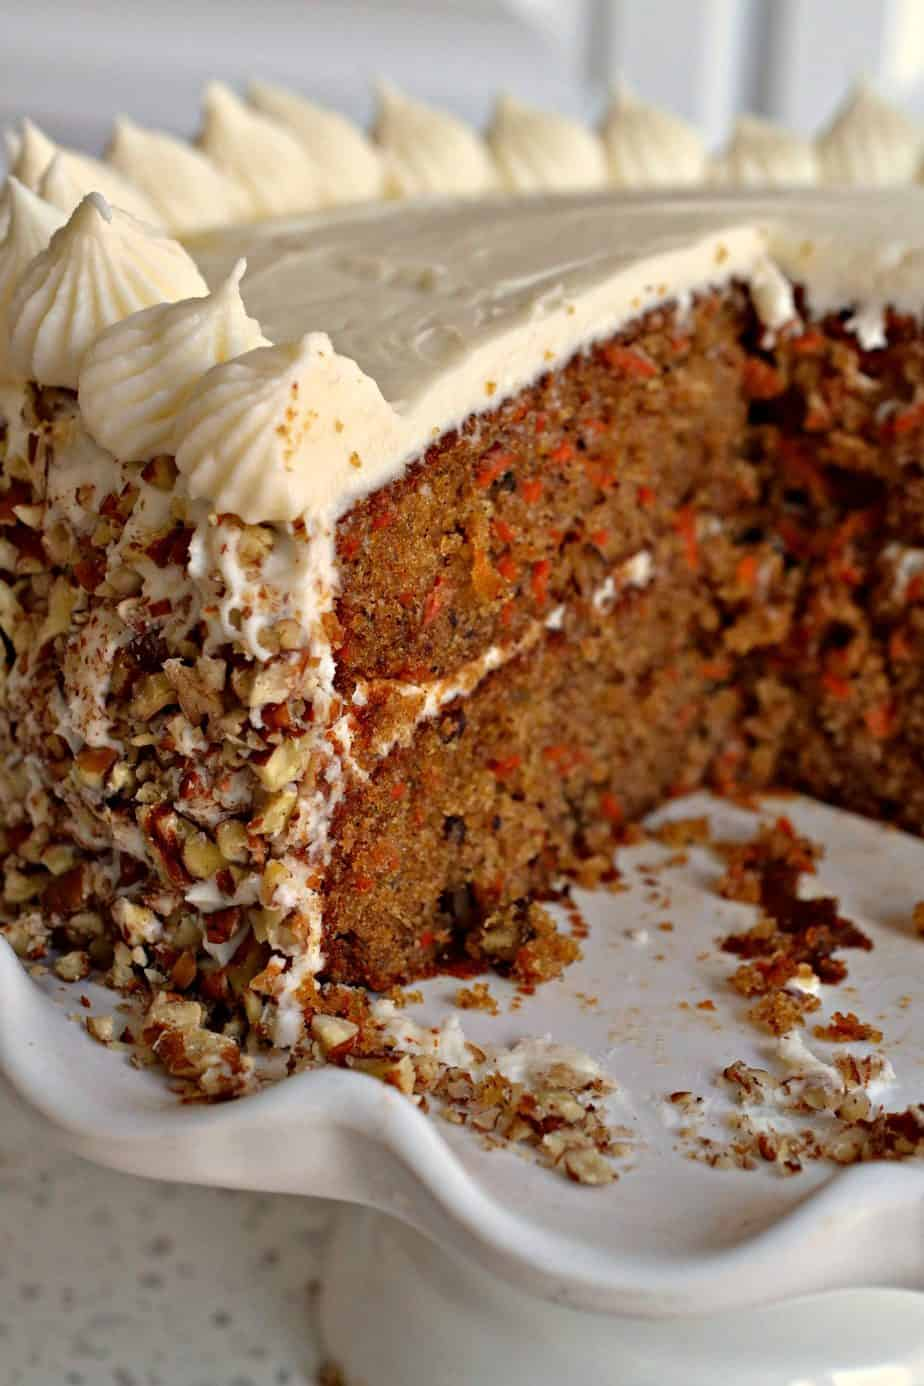 A delectable moist holiday carrot cake with a silky cream cheese frosting with chopped pecans.